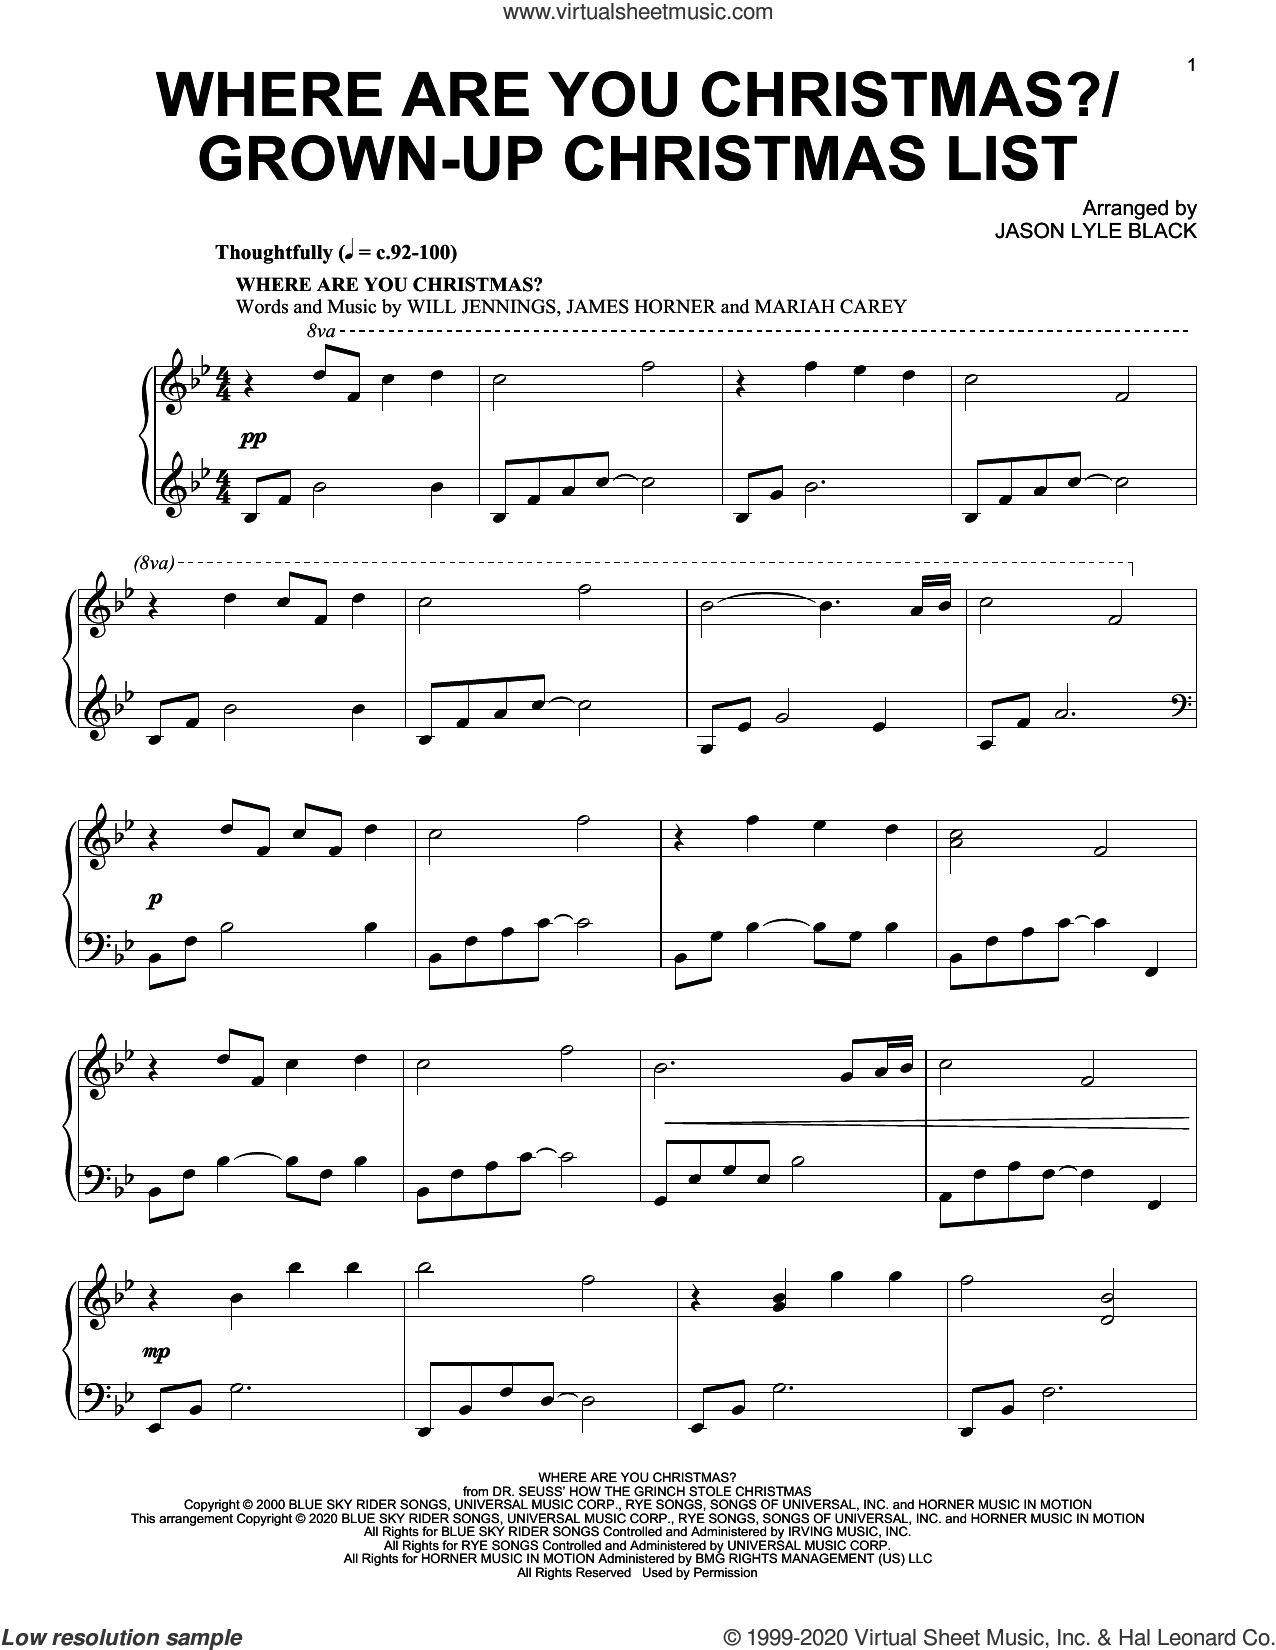 Where Are You Christmas?/Grown-Up Christmas List sheet music for piano solo by Mariah Carey, Jason Lyle Black, Amy Grant, Faith Hill, David Foster, James Horner, Linda Thompson-Jenner and Will Jennings, intermediate skill level